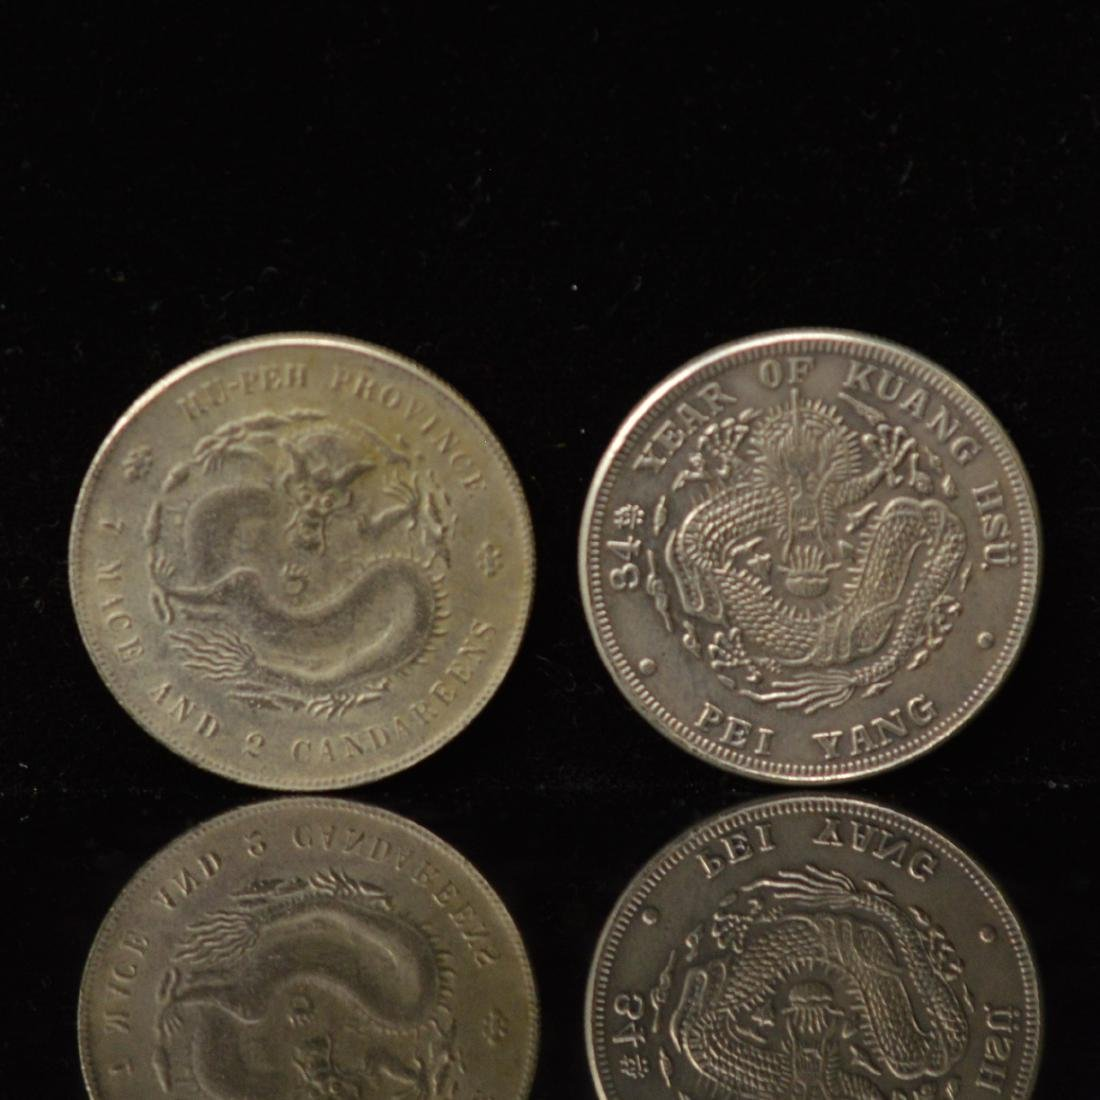 Two 34years of Kuang Hsu Silver coins